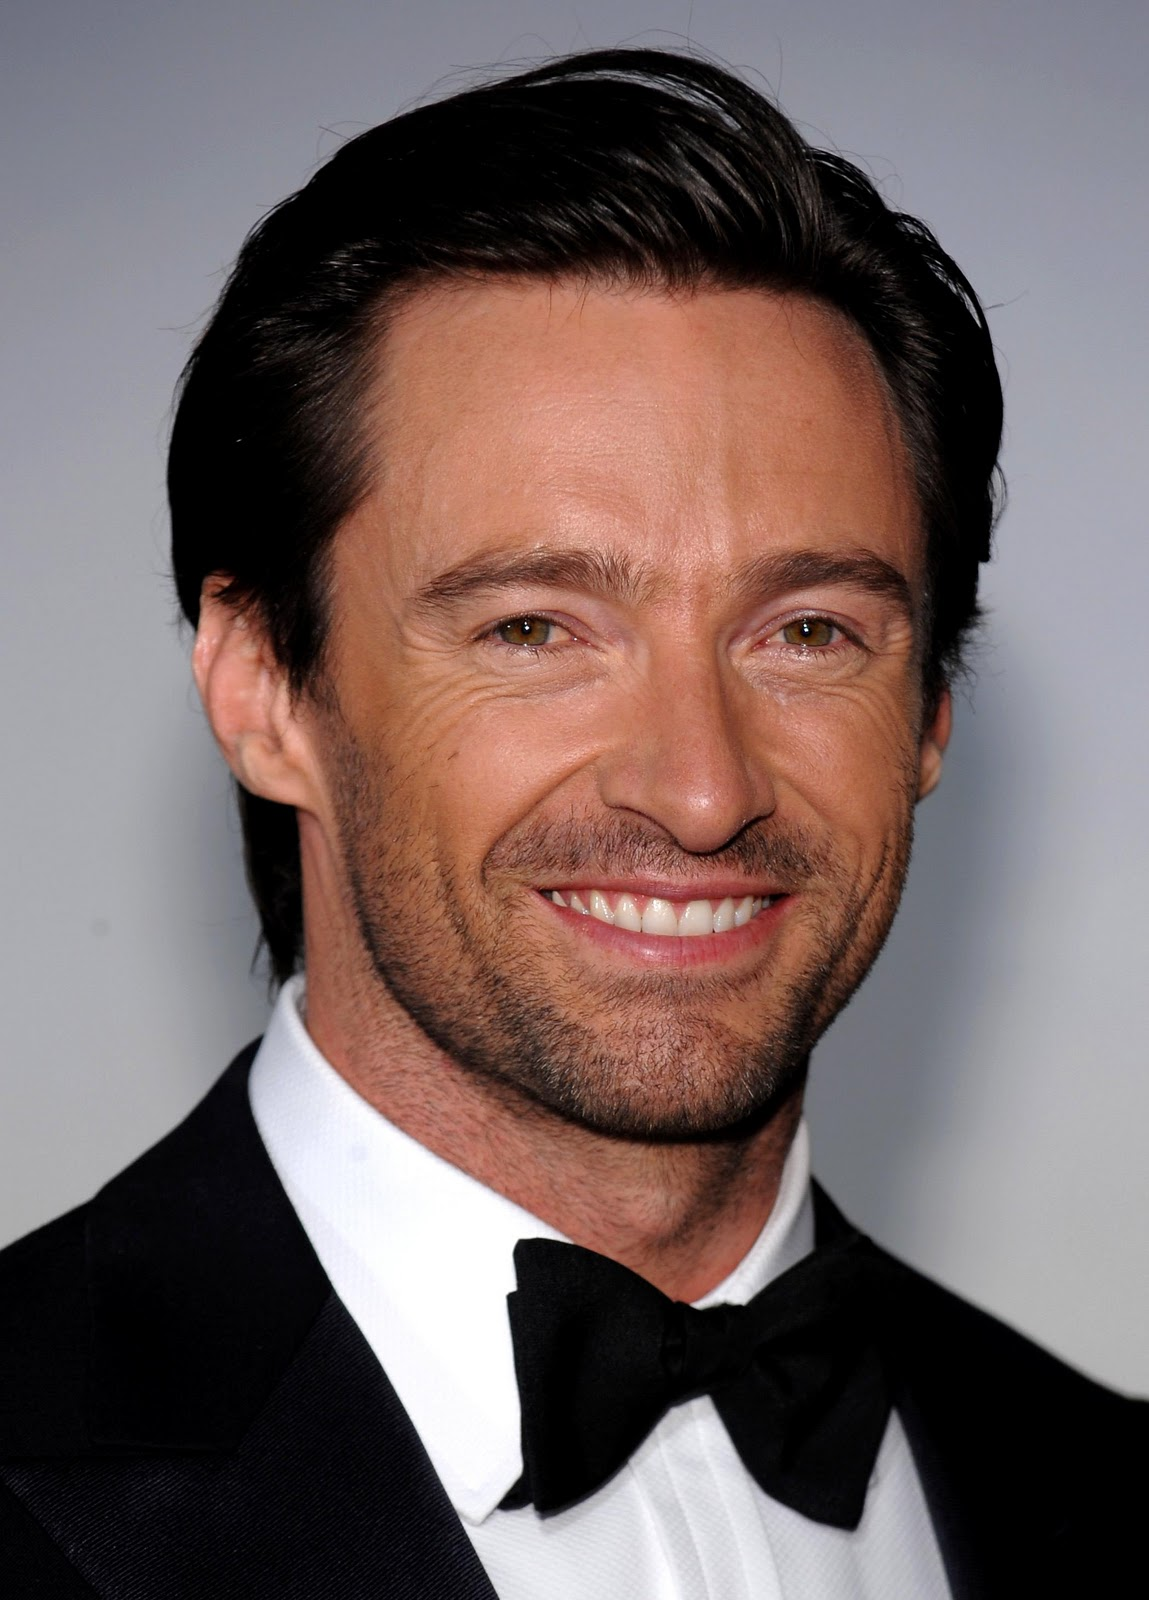 jackman hindu personals He's spent two decades dazzling audiences on both stage and screen now hugh jackman has revealed what has kept his marriage to deborra-lee furness rock solid since before he was famous.